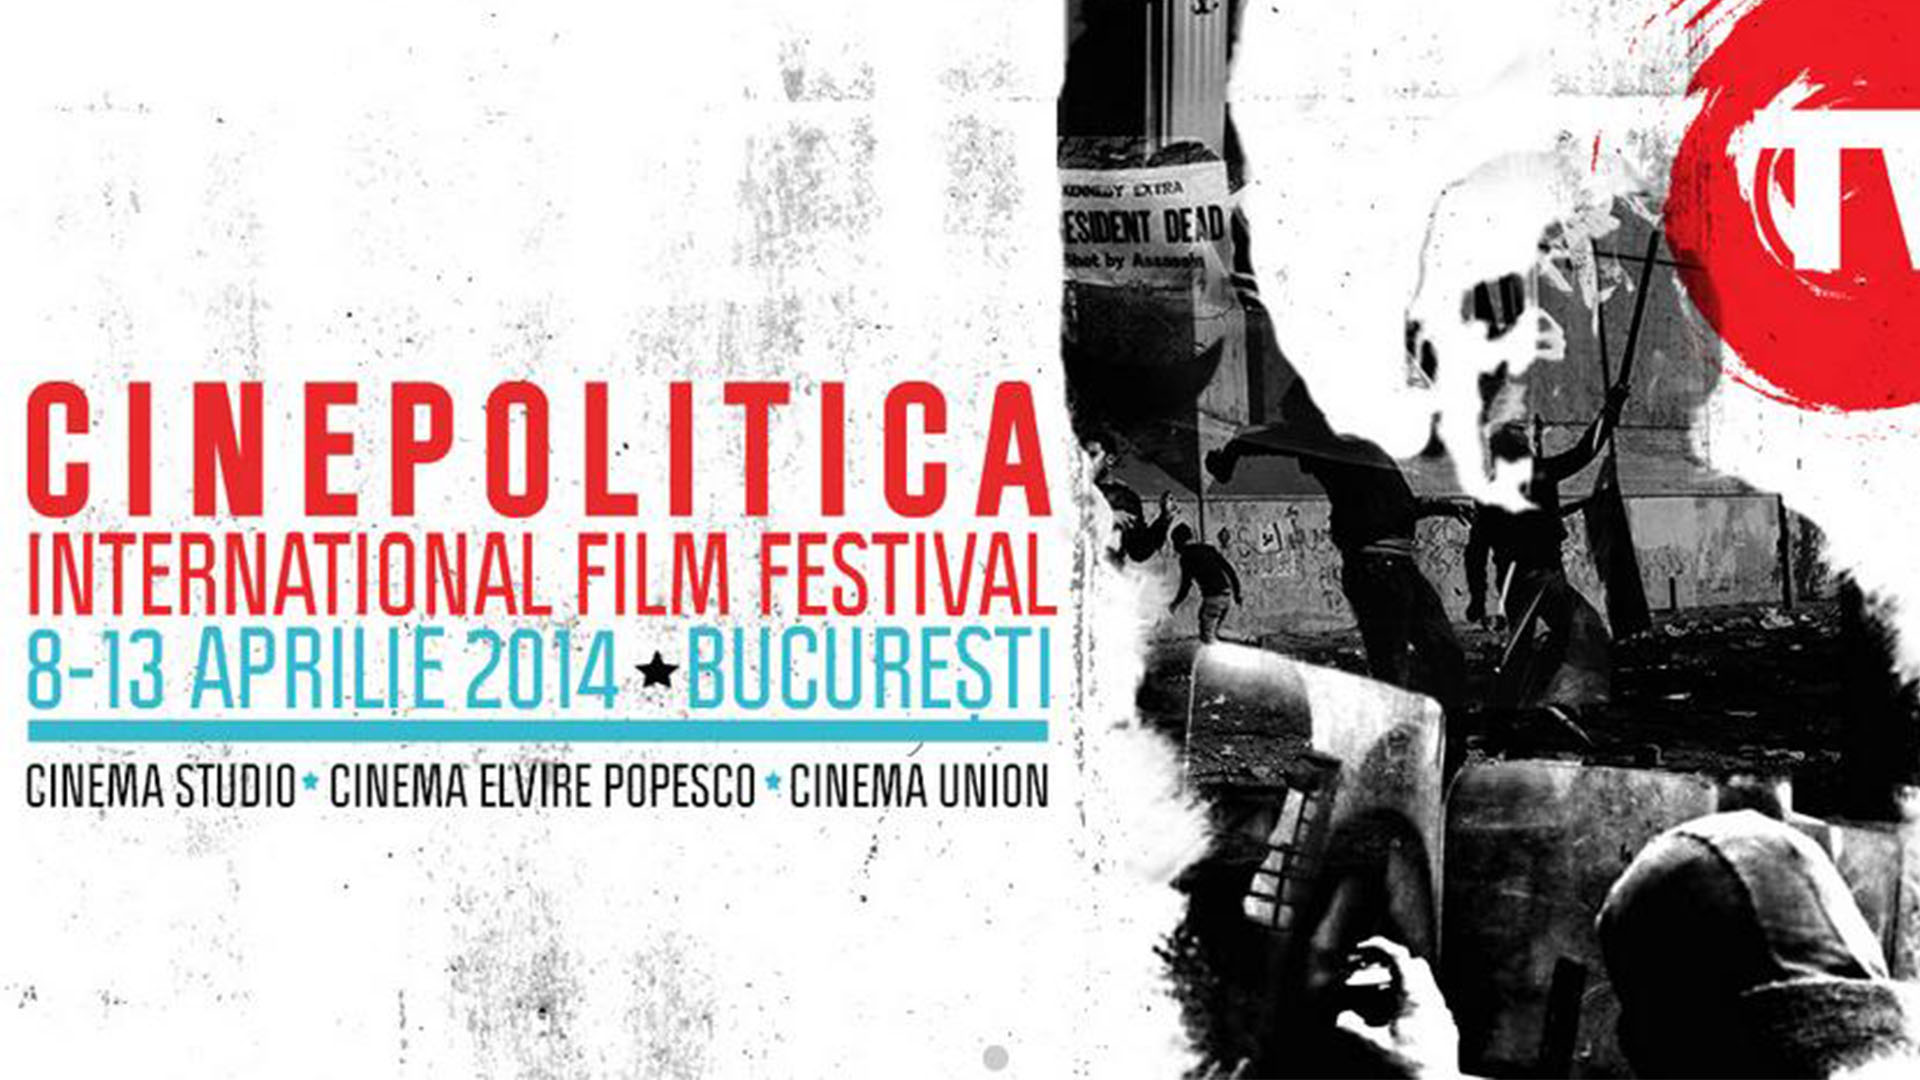 CINEPOLITICA 2014 | Eye on Films special programme